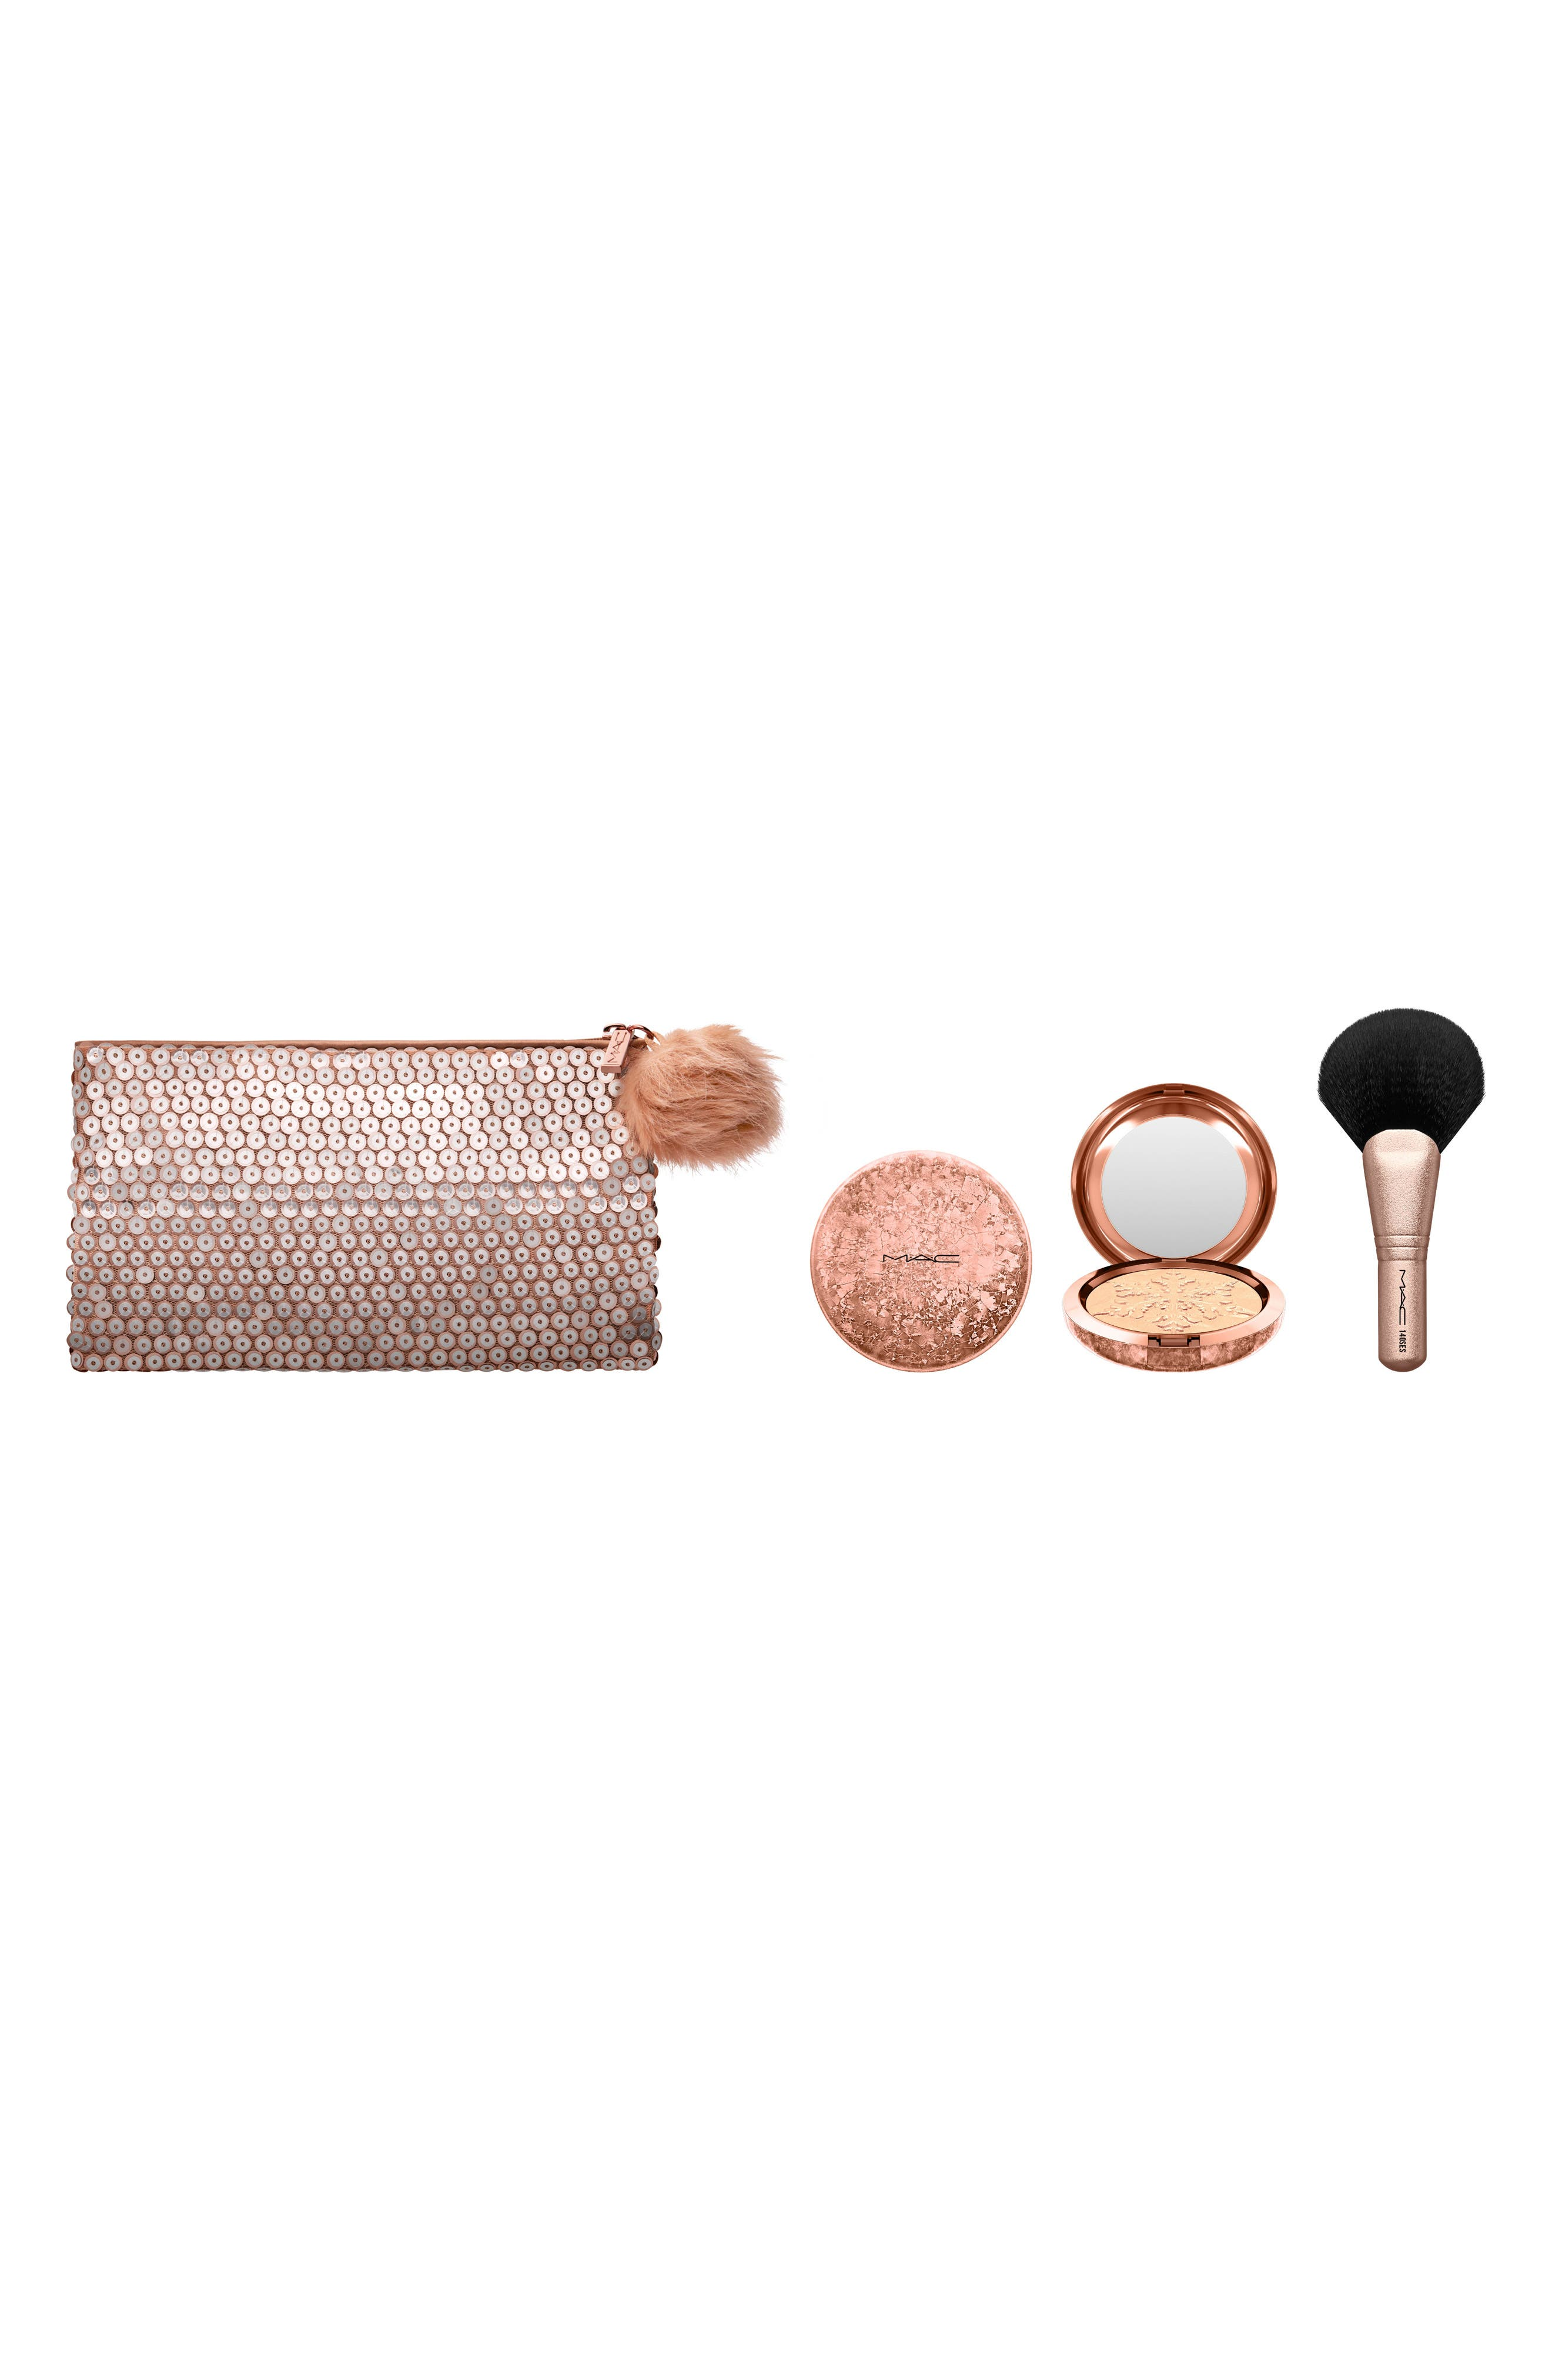 Alternate Image 1 Selected - MAC Snow Ball Peach Face Bag Collection (Nordstrom Exclusive) ($85 Value)